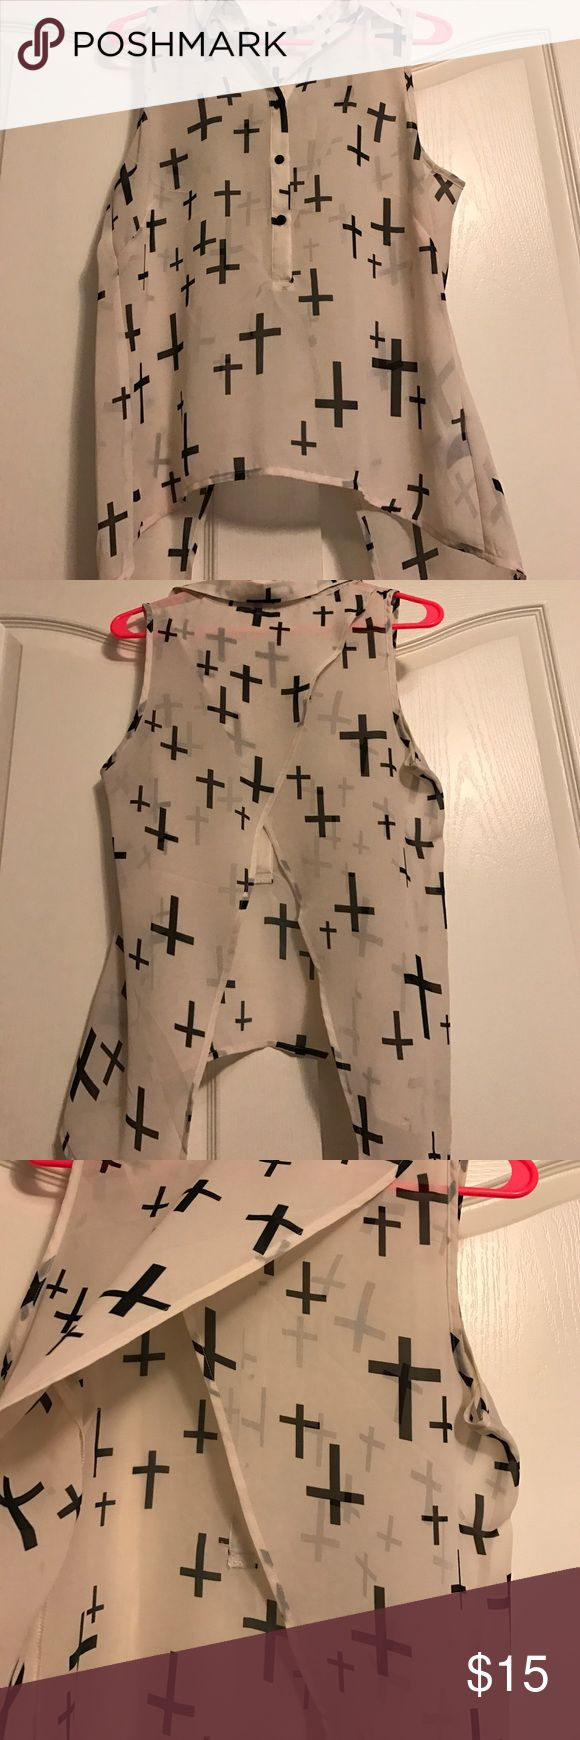 White sleeveless collared shirt with black crosses White sleeveless collared shirt with black crosses- buttons on front and the back hangs down with the sides crossing over each other Charlotte Russe Tops